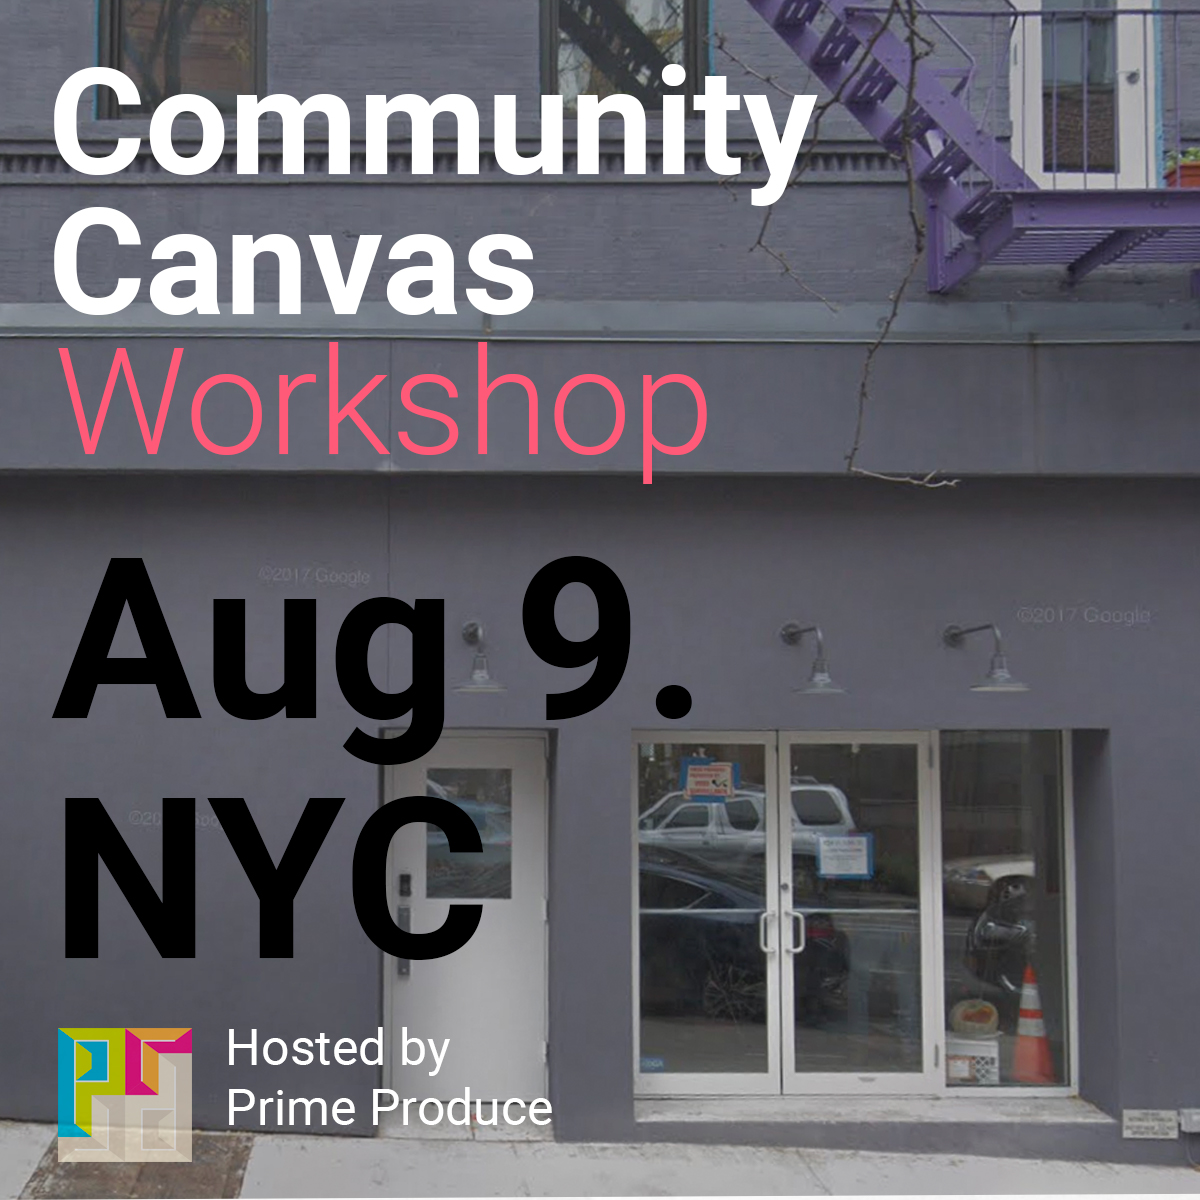 Community Canvas Workshop NYC Aug 8 Prime.jpg